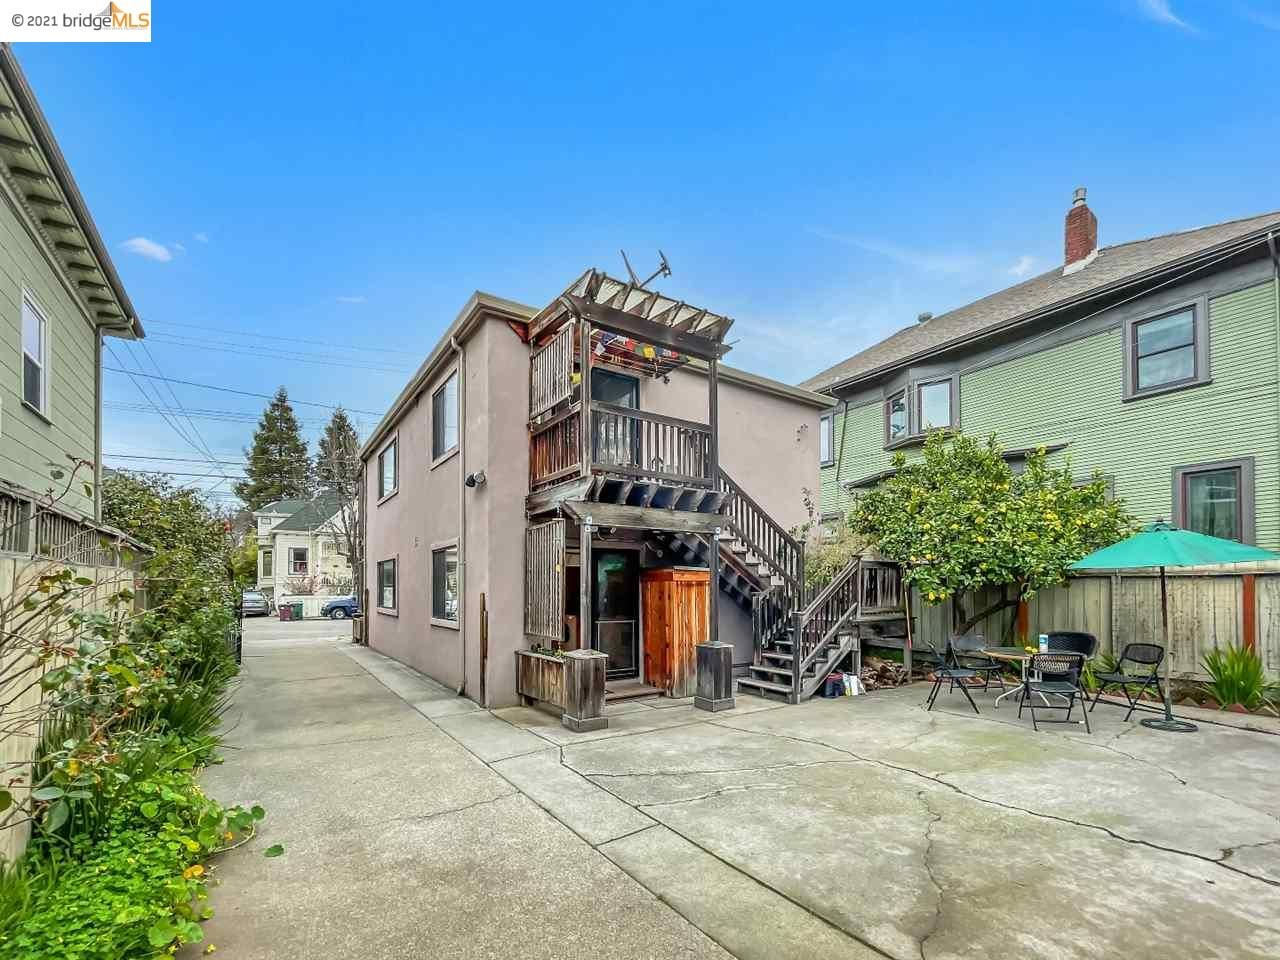 Photo of 481 36Th St, OAKLAND, CA 94609 (MLS # 40938681)